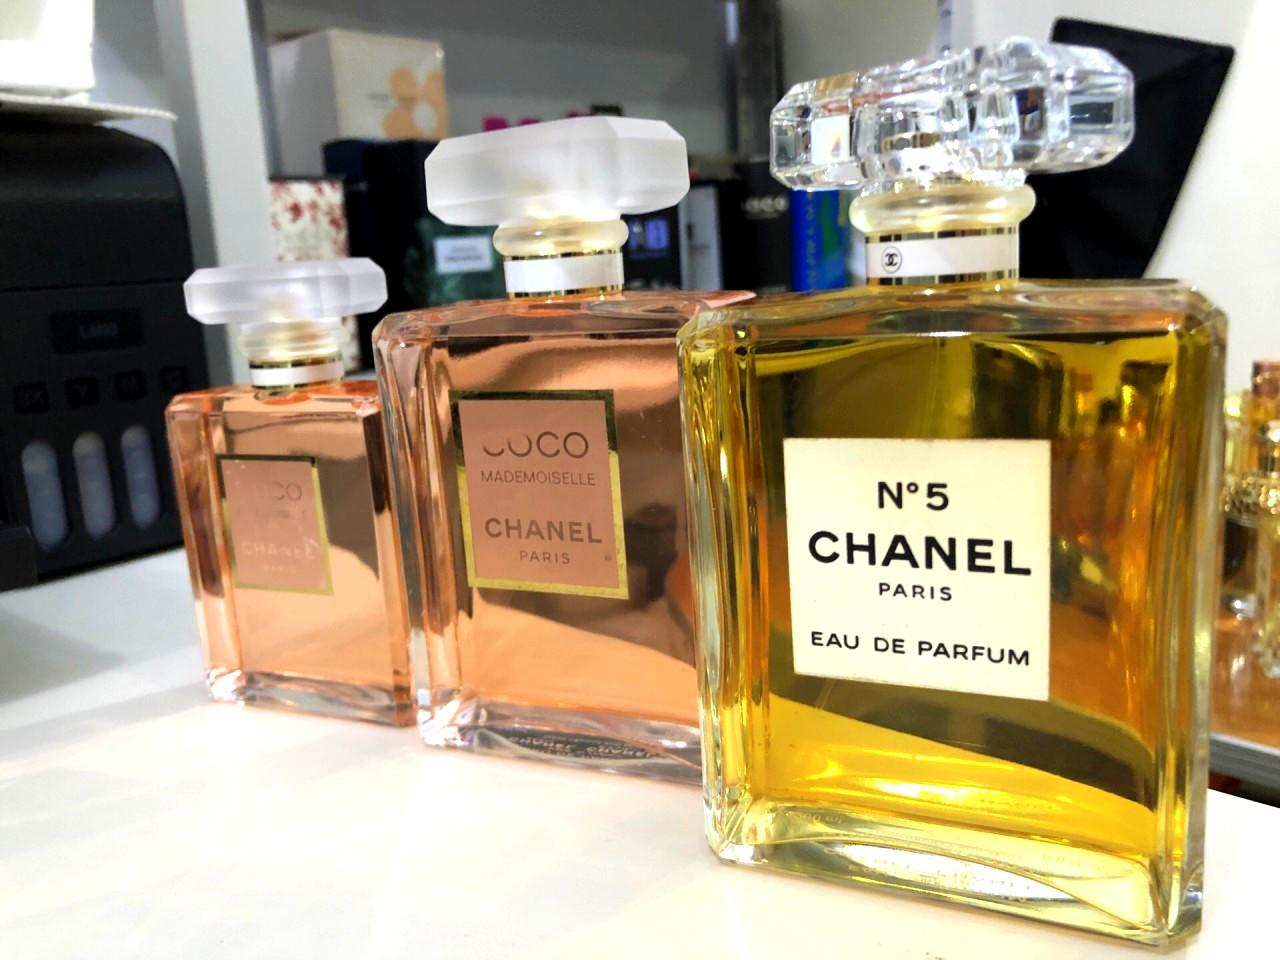 Chanel coco mademoiselle & chanel no 5 jumbo size 200ml😍😍😍 REALPICT & READYSTOCK YA❤ Kuy chat skrg lgsg order! First come first serve😍😘 Authentic Guarantee/100% MONEYBACK👌 Info Grosir & Partai WA:085782955531✔